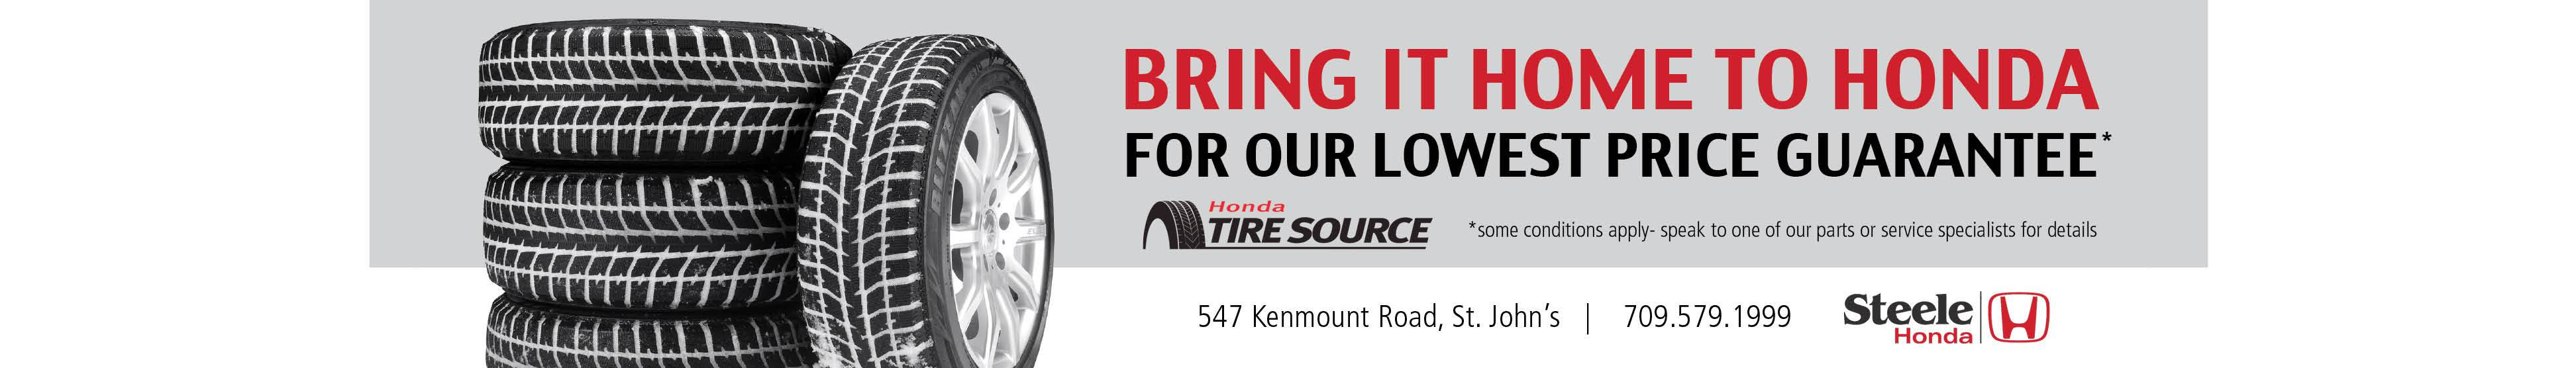 Tire Pricing Guarantee